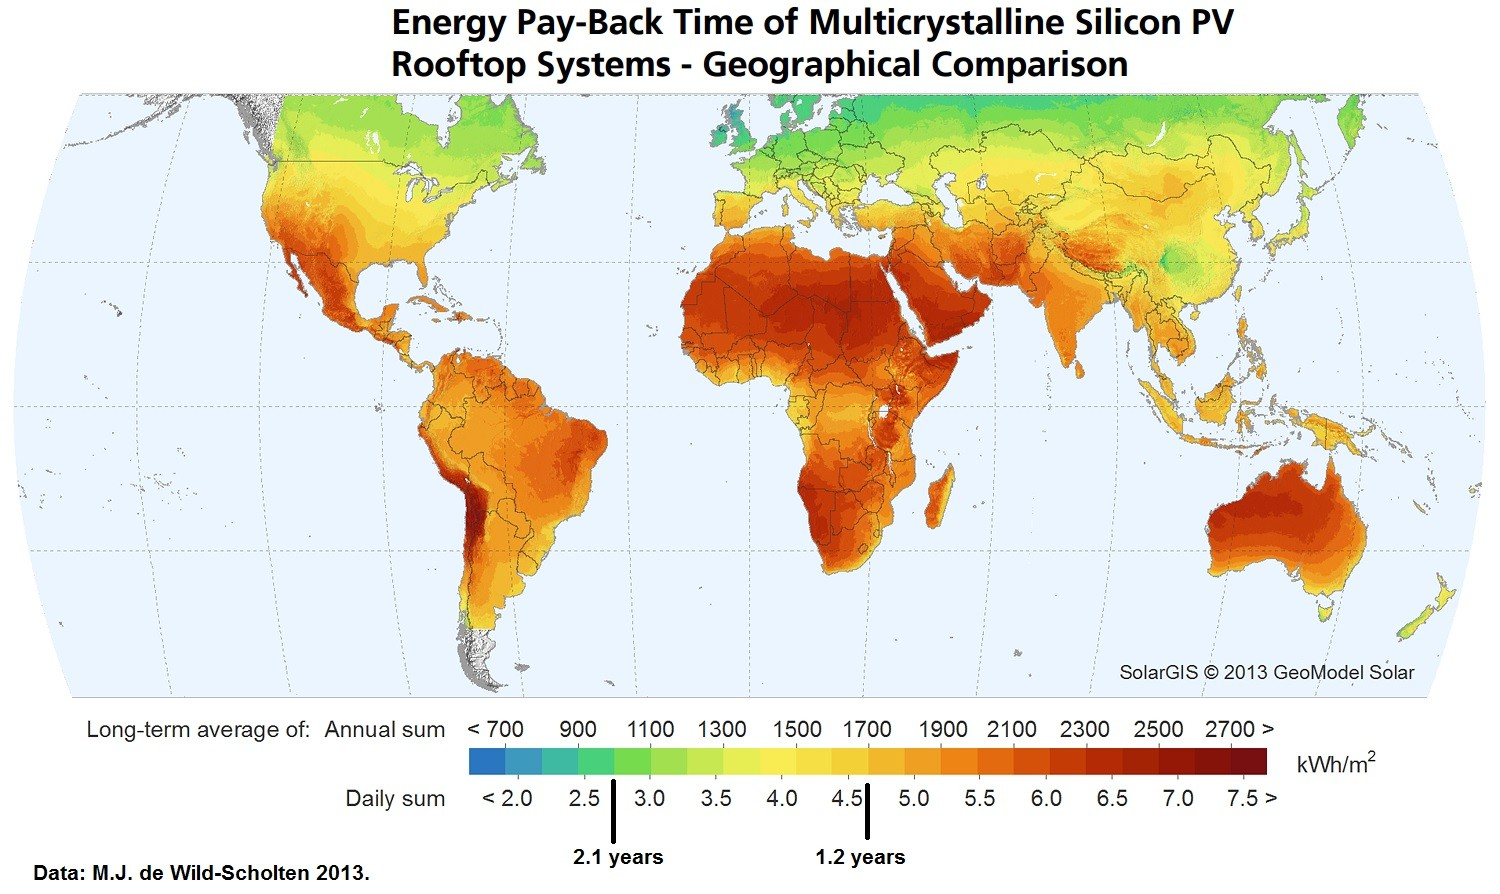 Energy Pay Back Time of Multicrystalline Silicon PV Rooftop Systems - Geographical Comparison